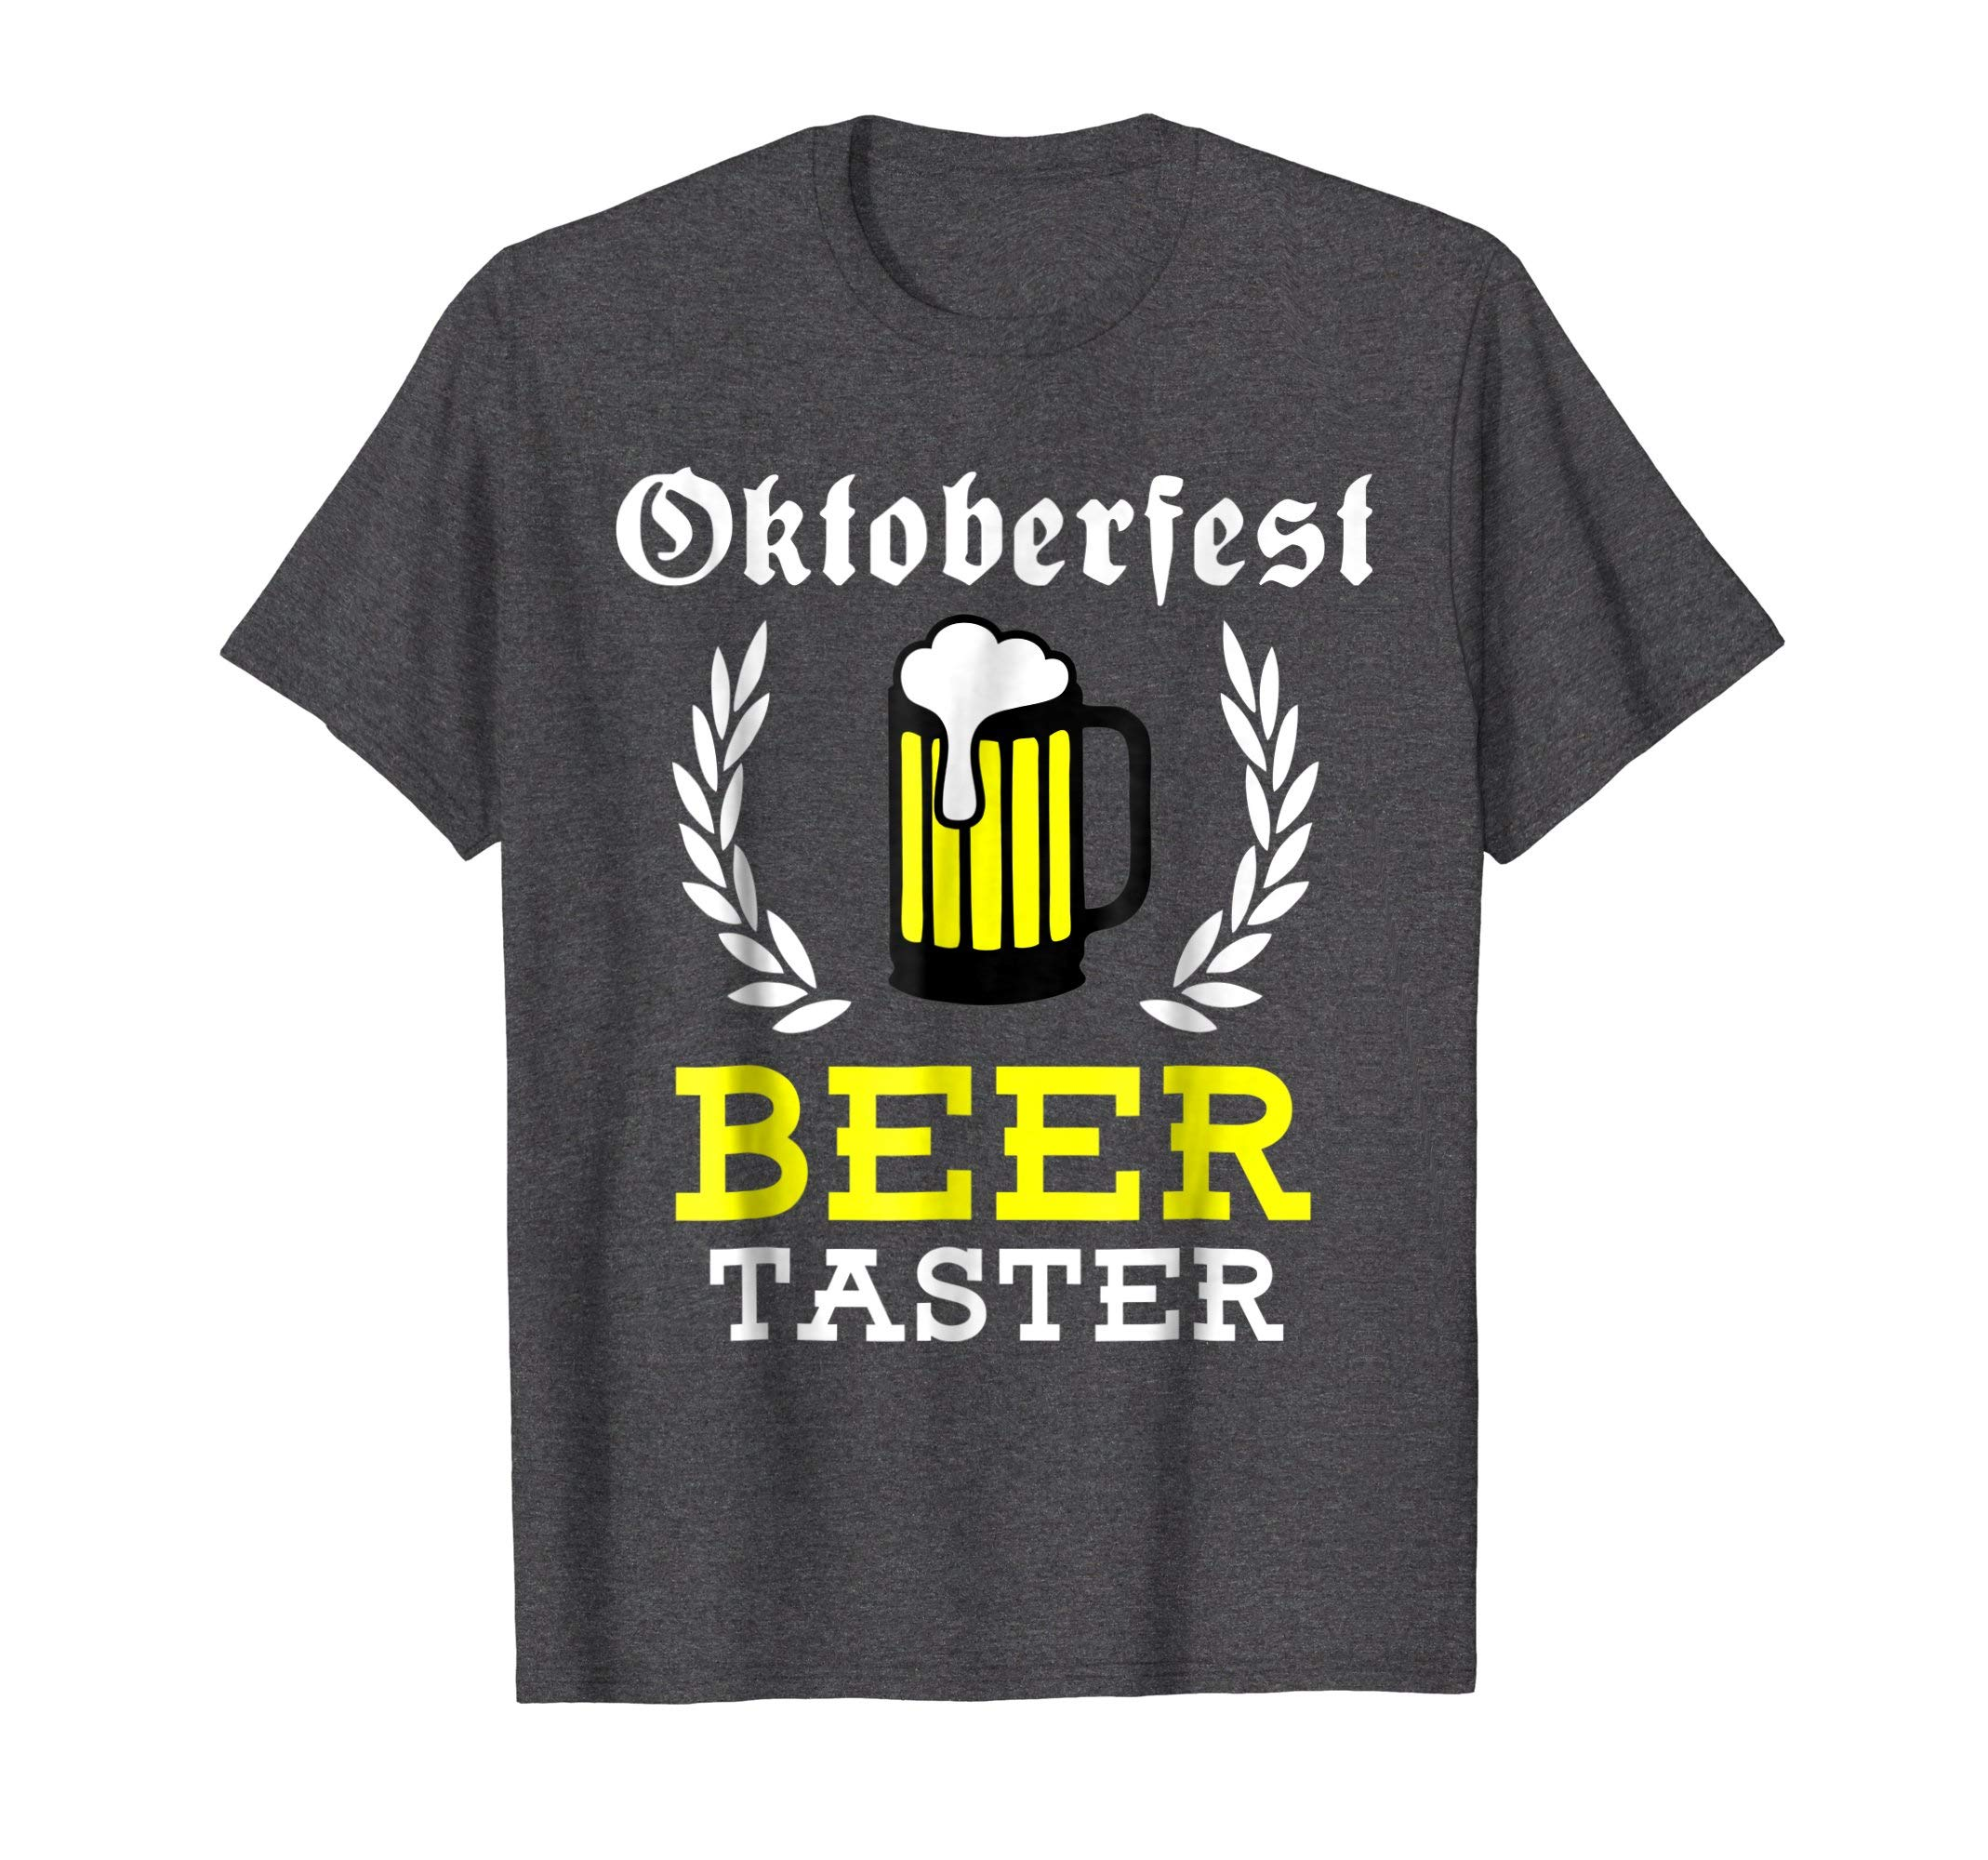 Check Out This Awesome Oktoberfest Beer Taster T Shirt Drinking Team Tee